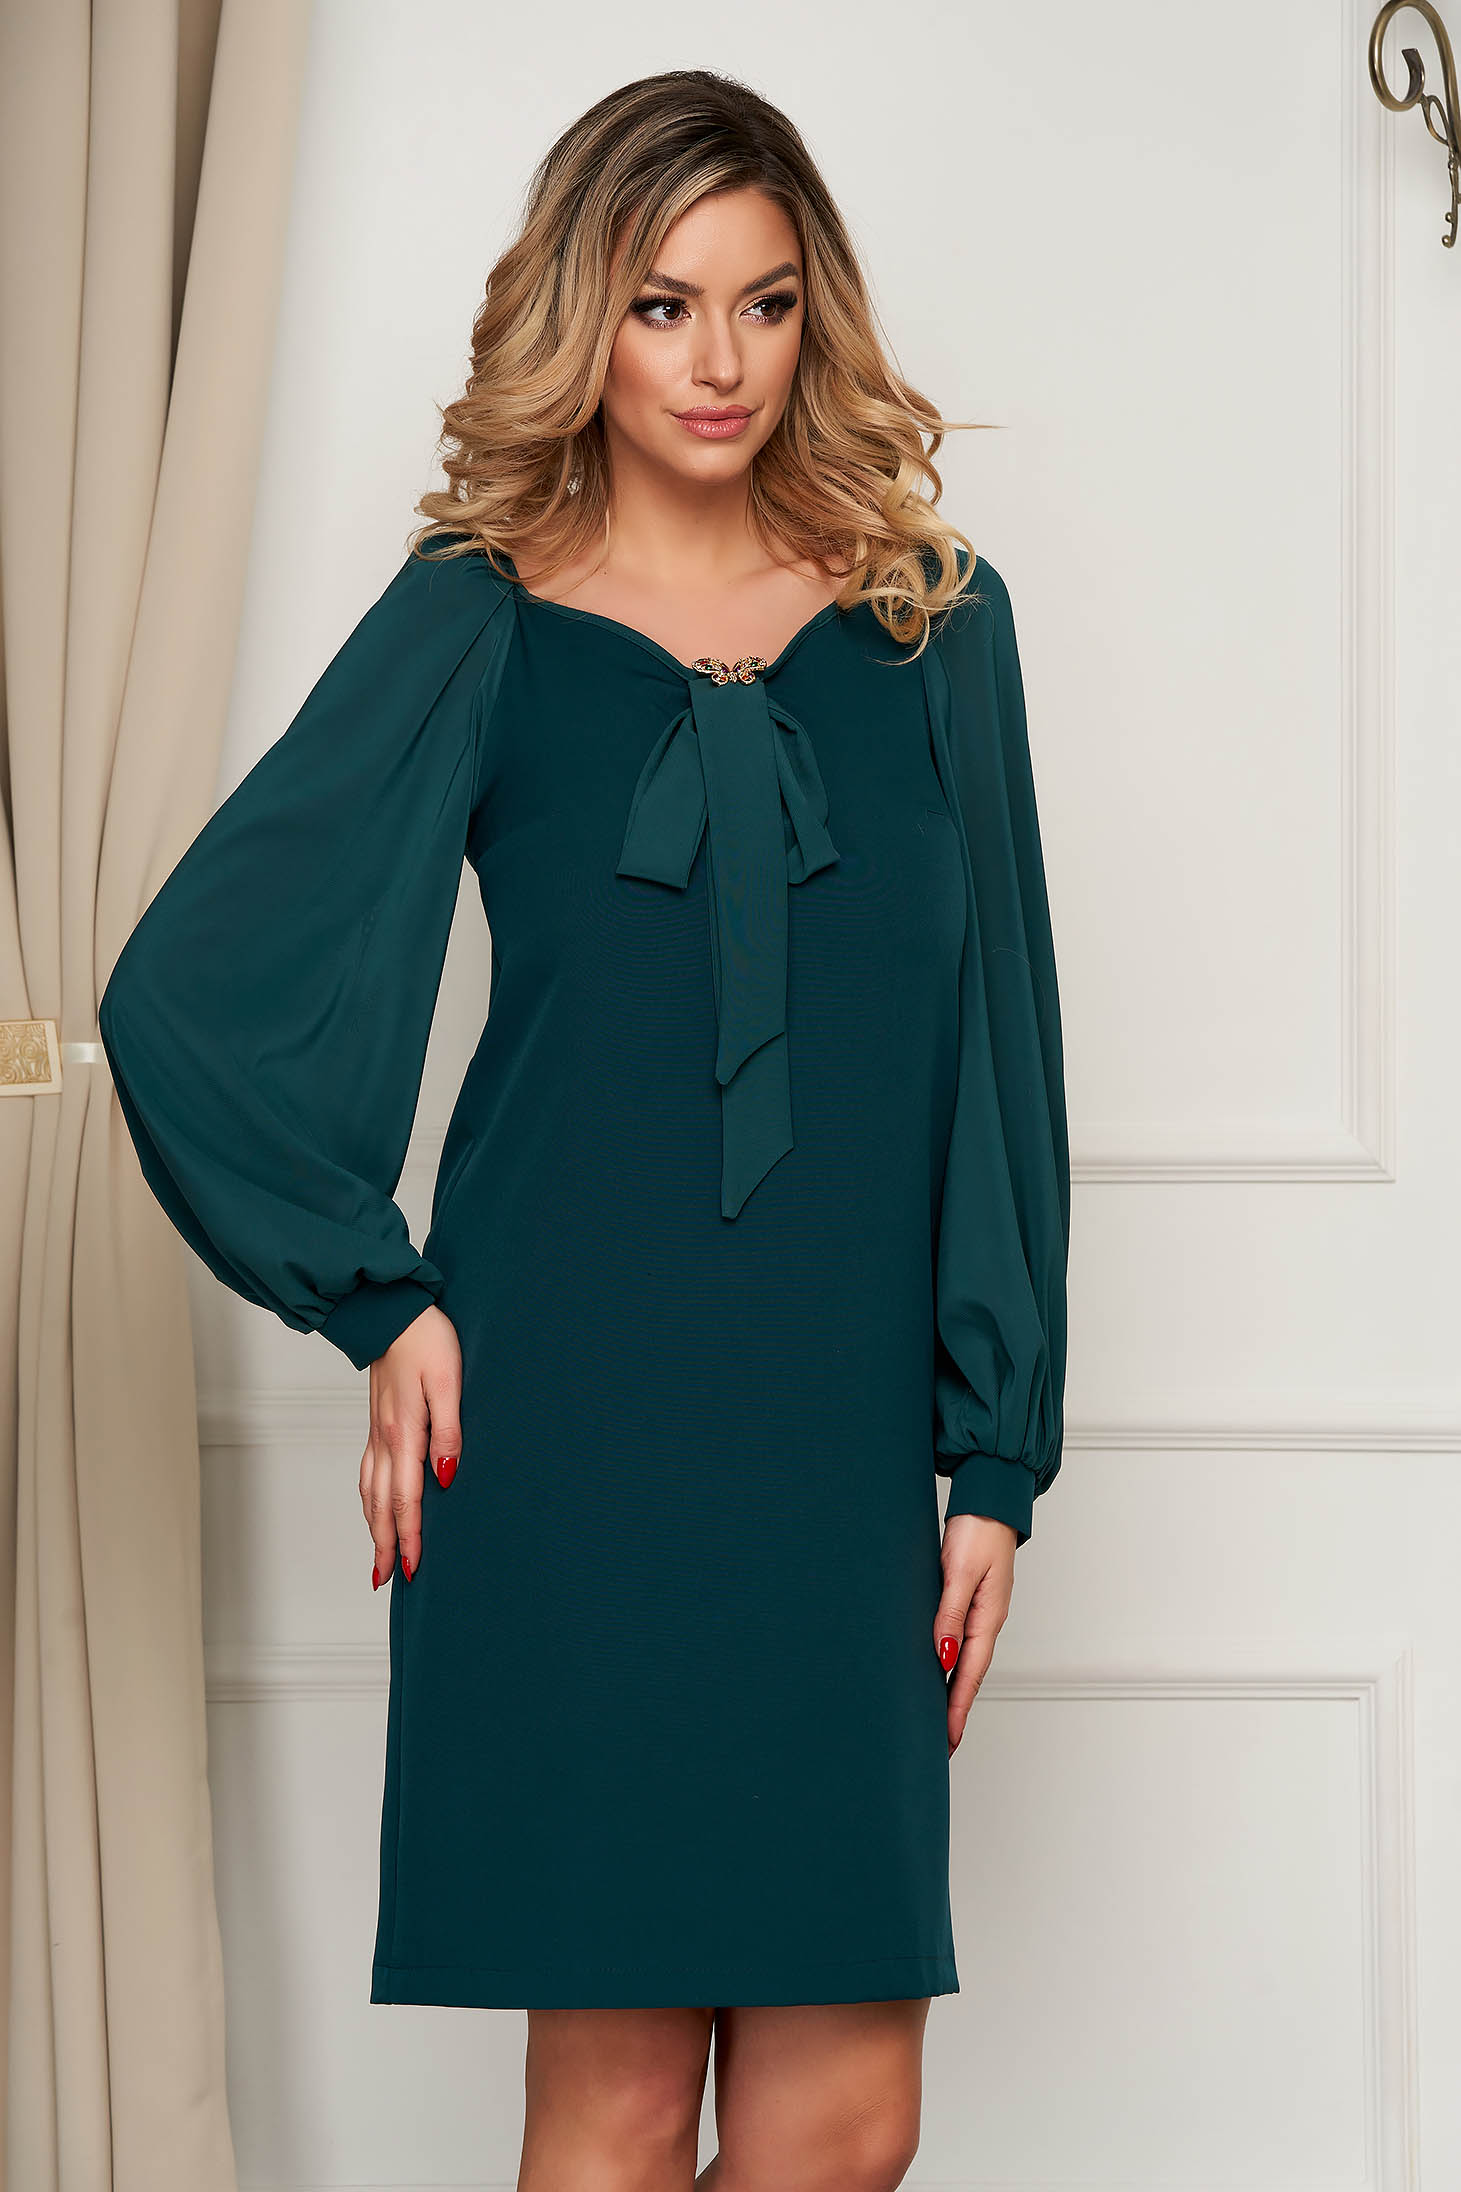 Dress StarShinerS green occasional with veil sleeves accessorized with breastpin with bow flared